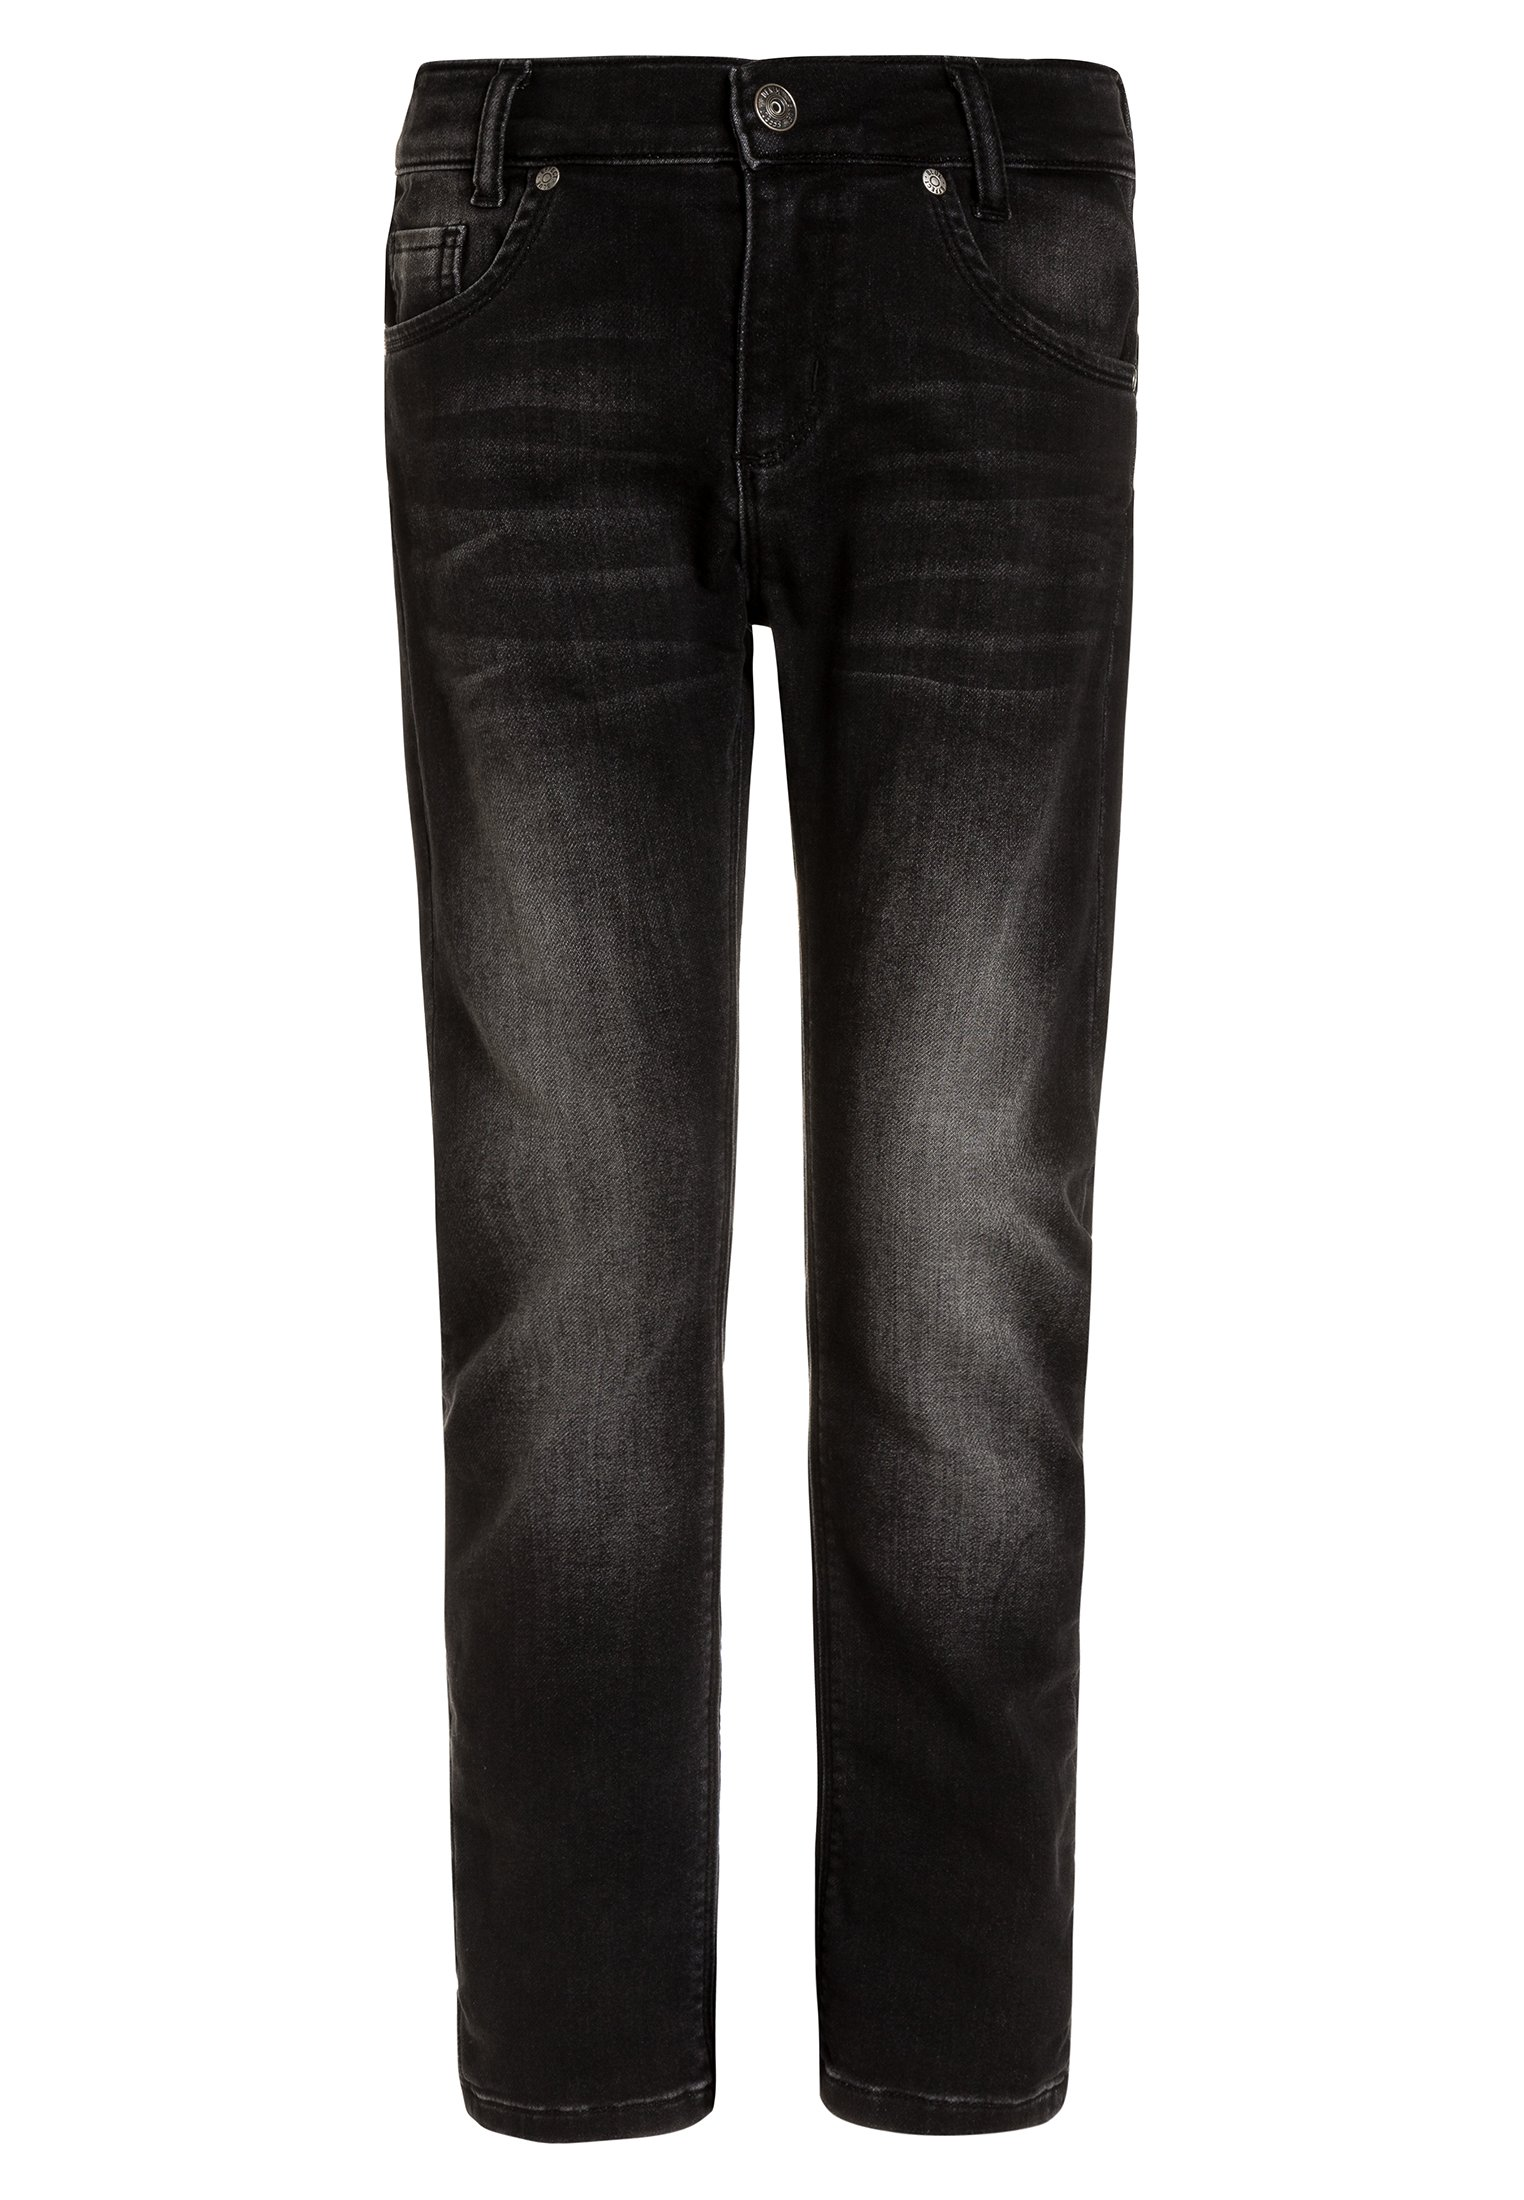 Bambini Jeans slim fit